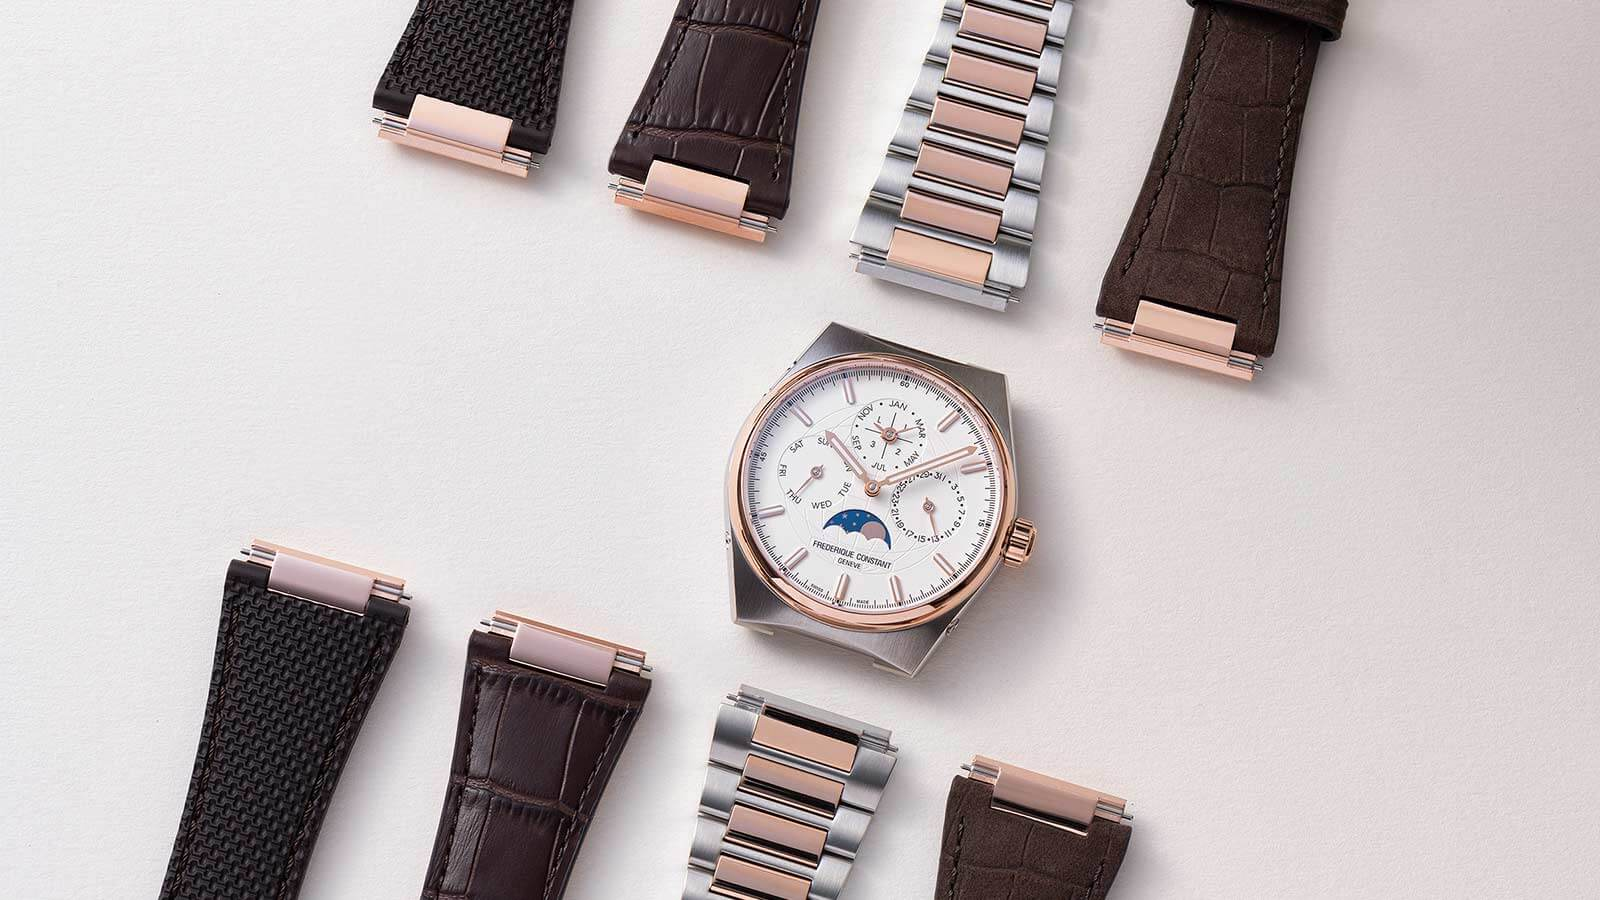 FREDERIQUE CONSTANT Highlife Perpetual Calendar Manufacture mit Band-Schnellwechselsystem